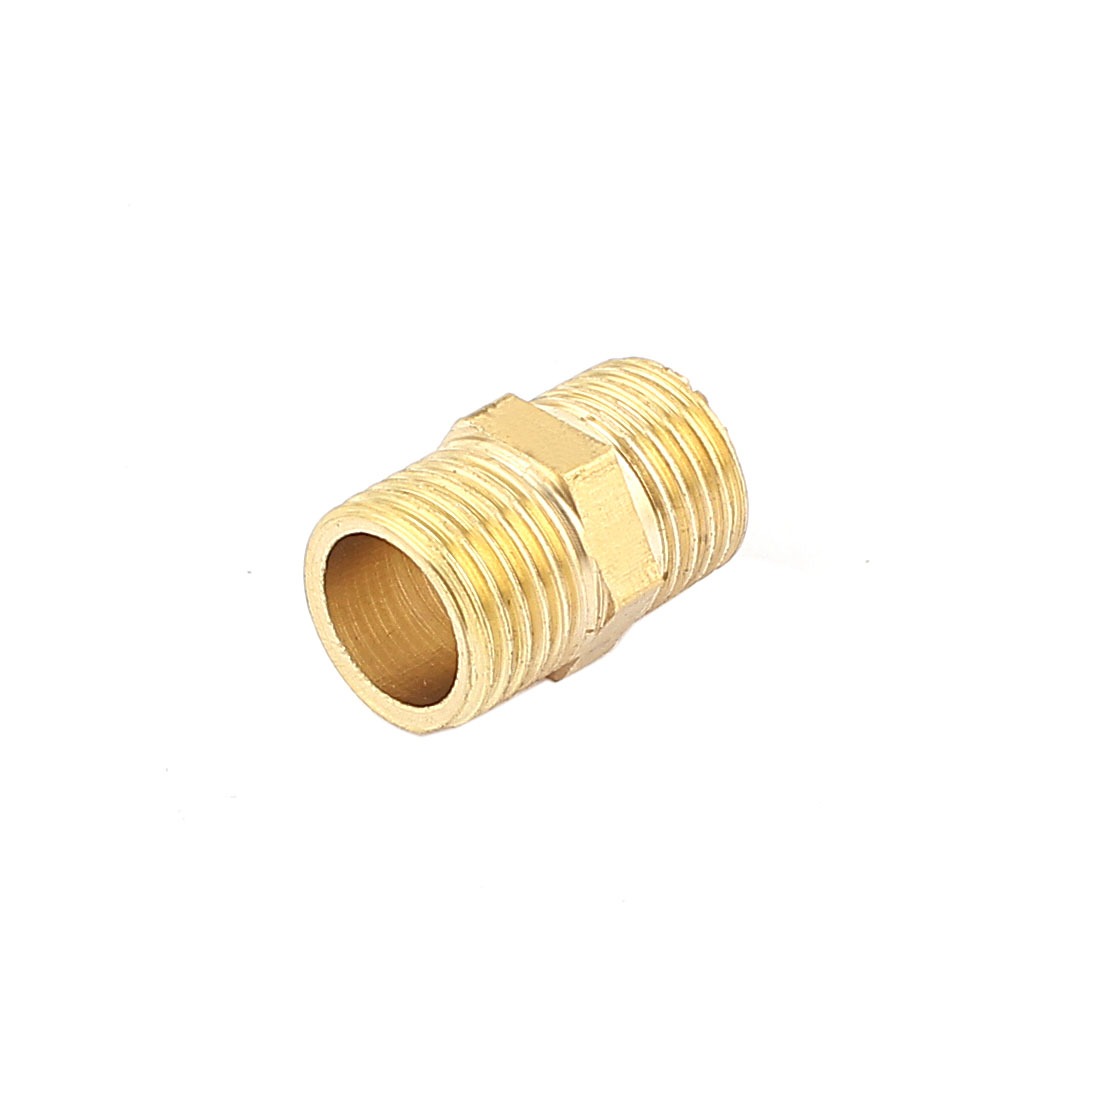 "21mm Length 1/4"" PT to 1/4"" PT Male Hex Nipple Reducing Connector Fitting"